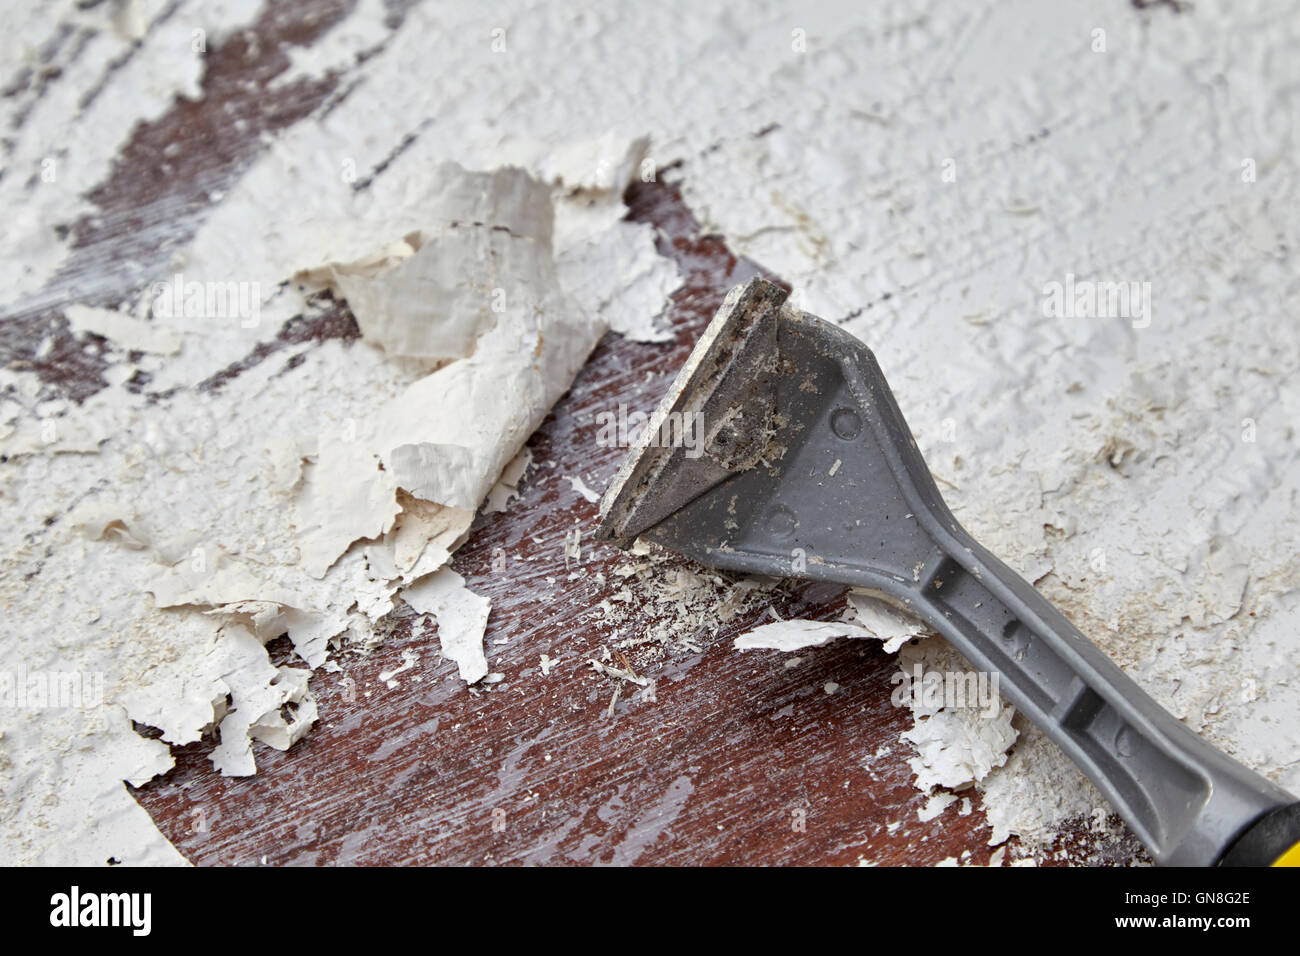 using blade scraper to scrape off paint bubbling up due to application of paintstripper on a wooden door - Stock Image